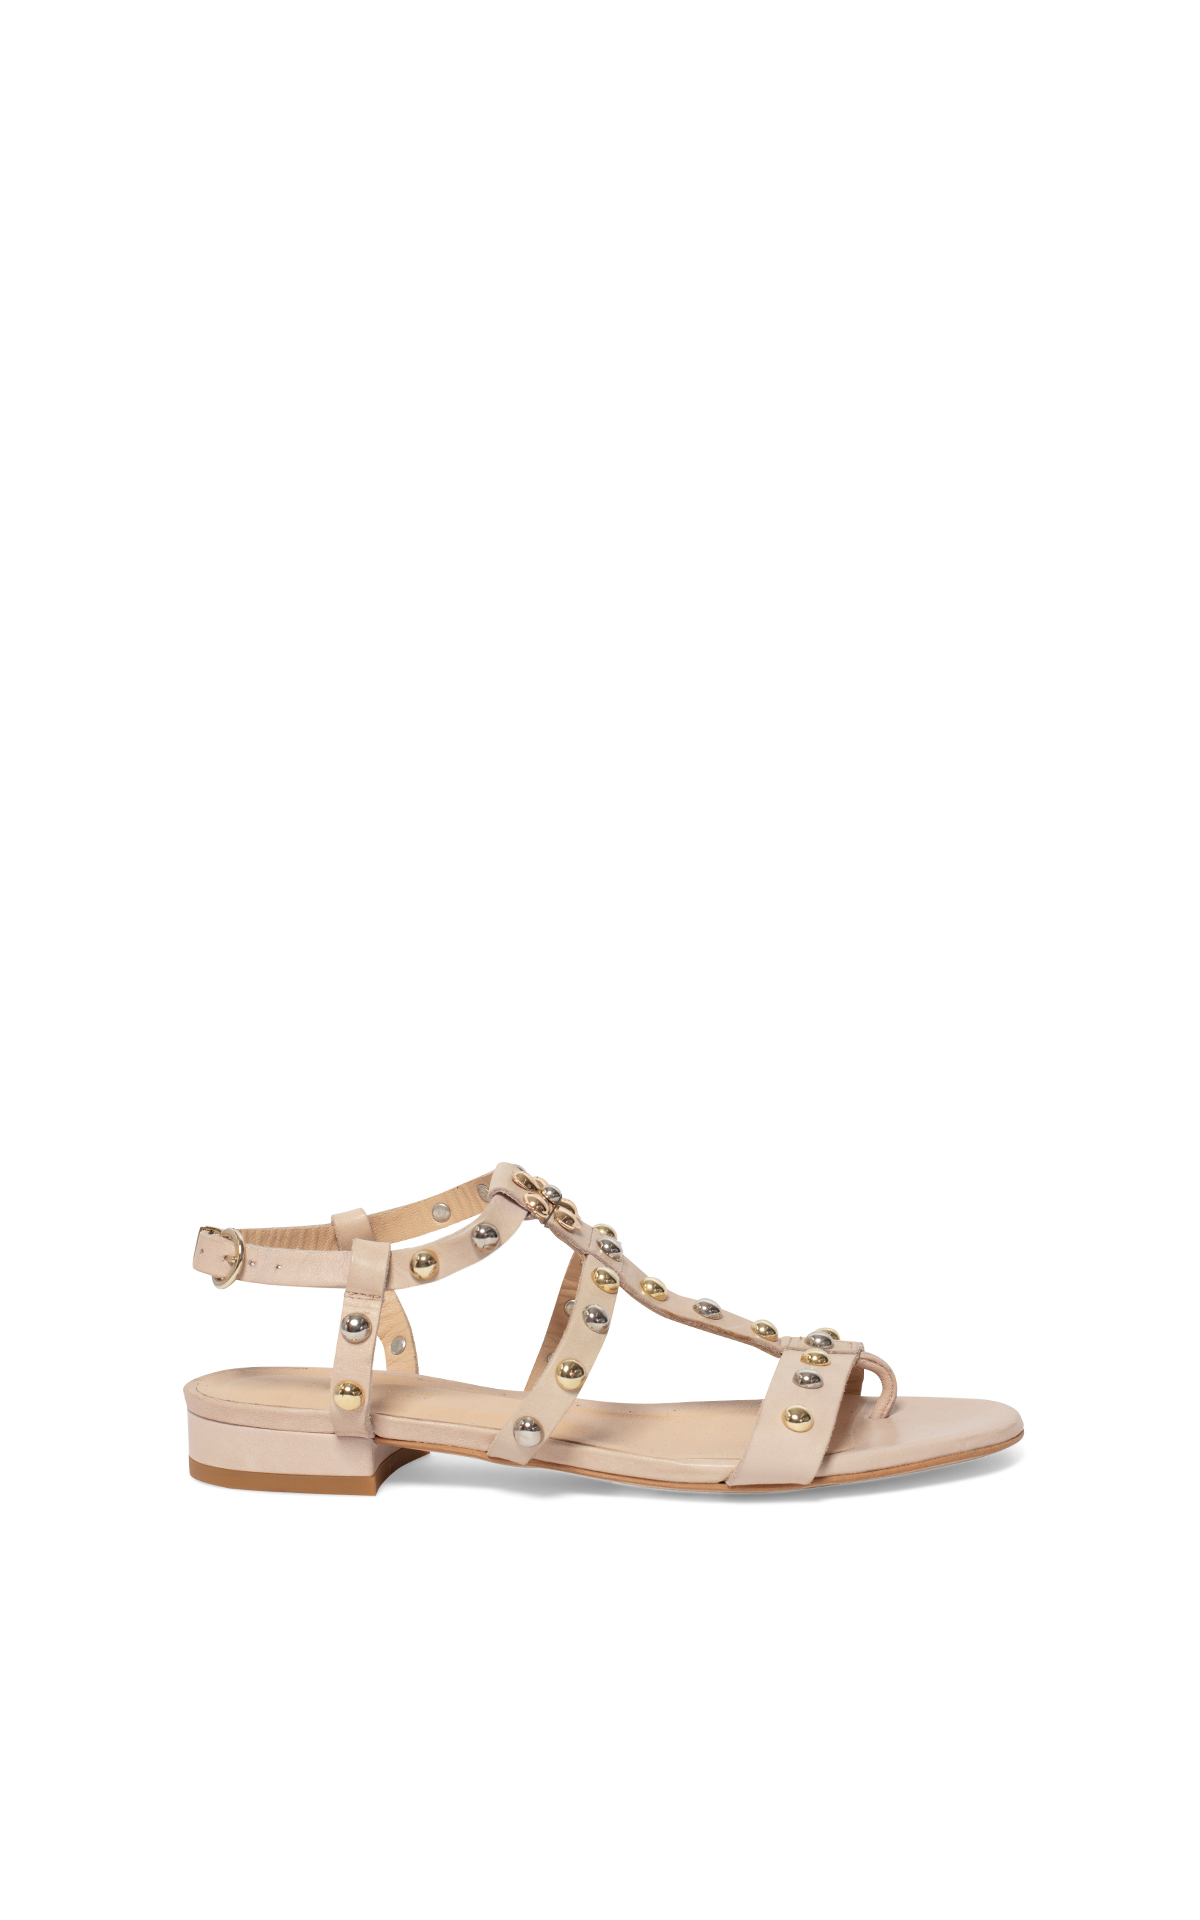 Claudie Pierlot Women's Ari nude sandals*